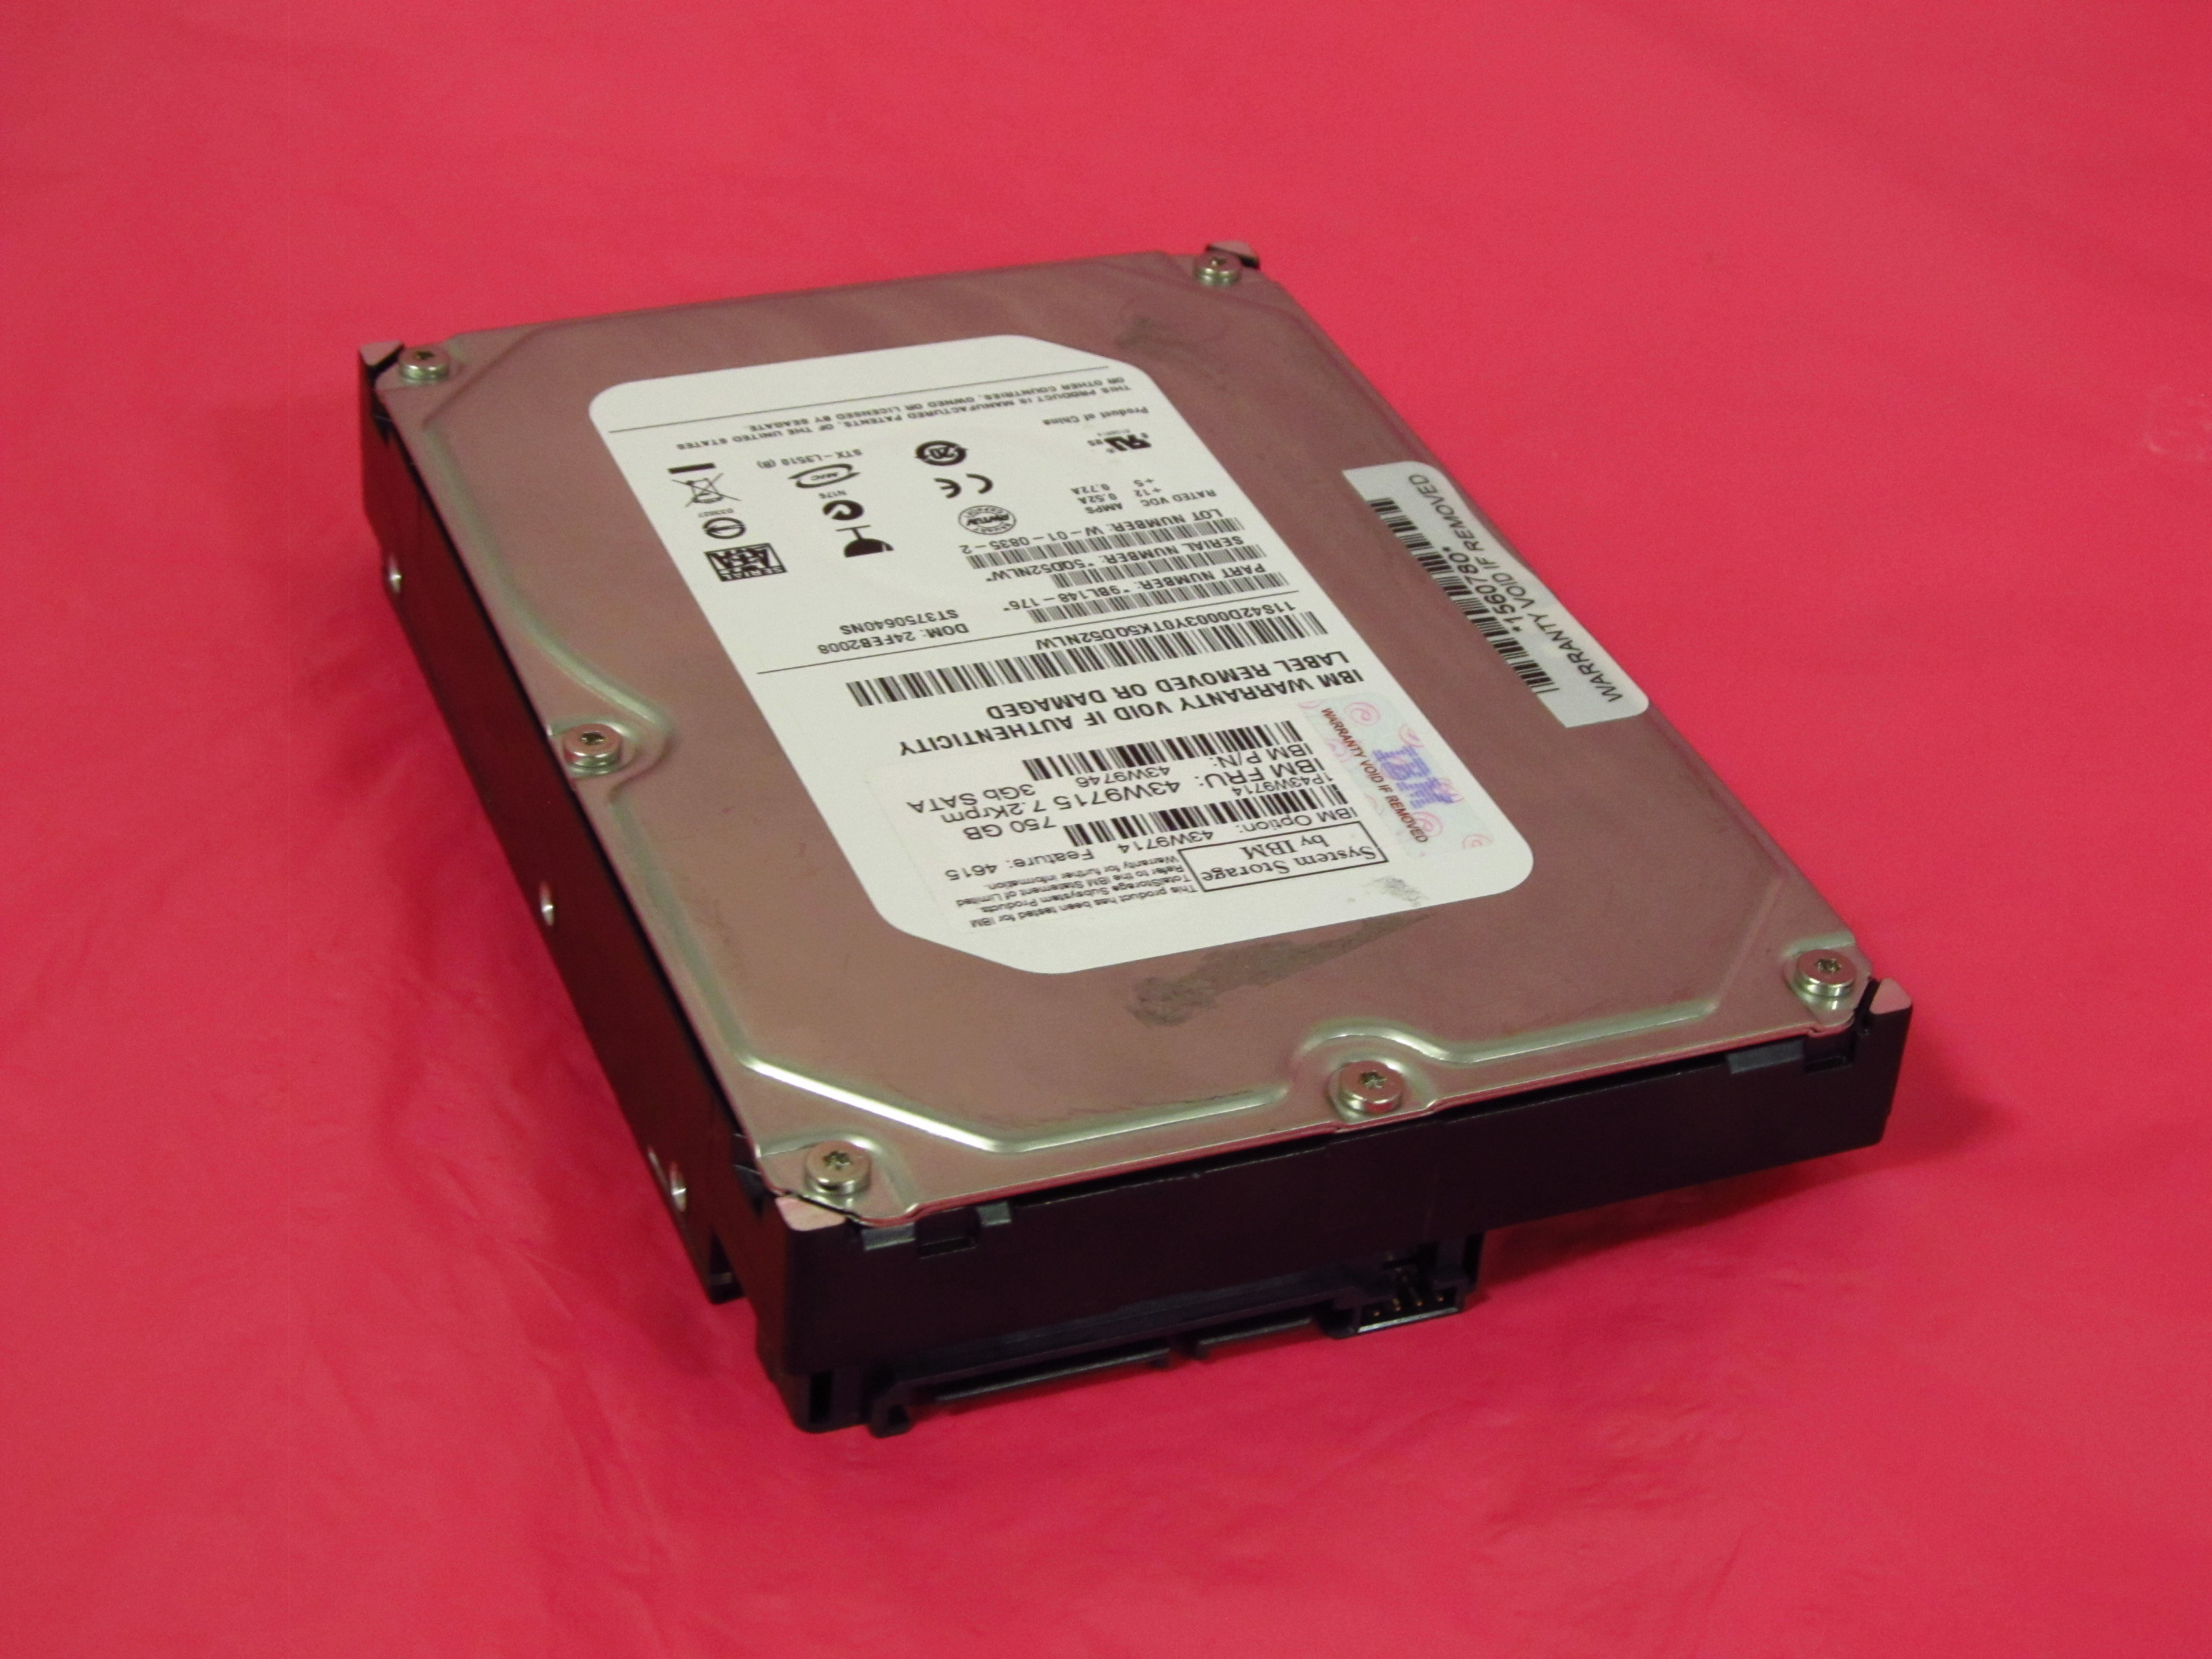 removable SAS 3.5 IBM 39R7352 IBM 73.4 GB